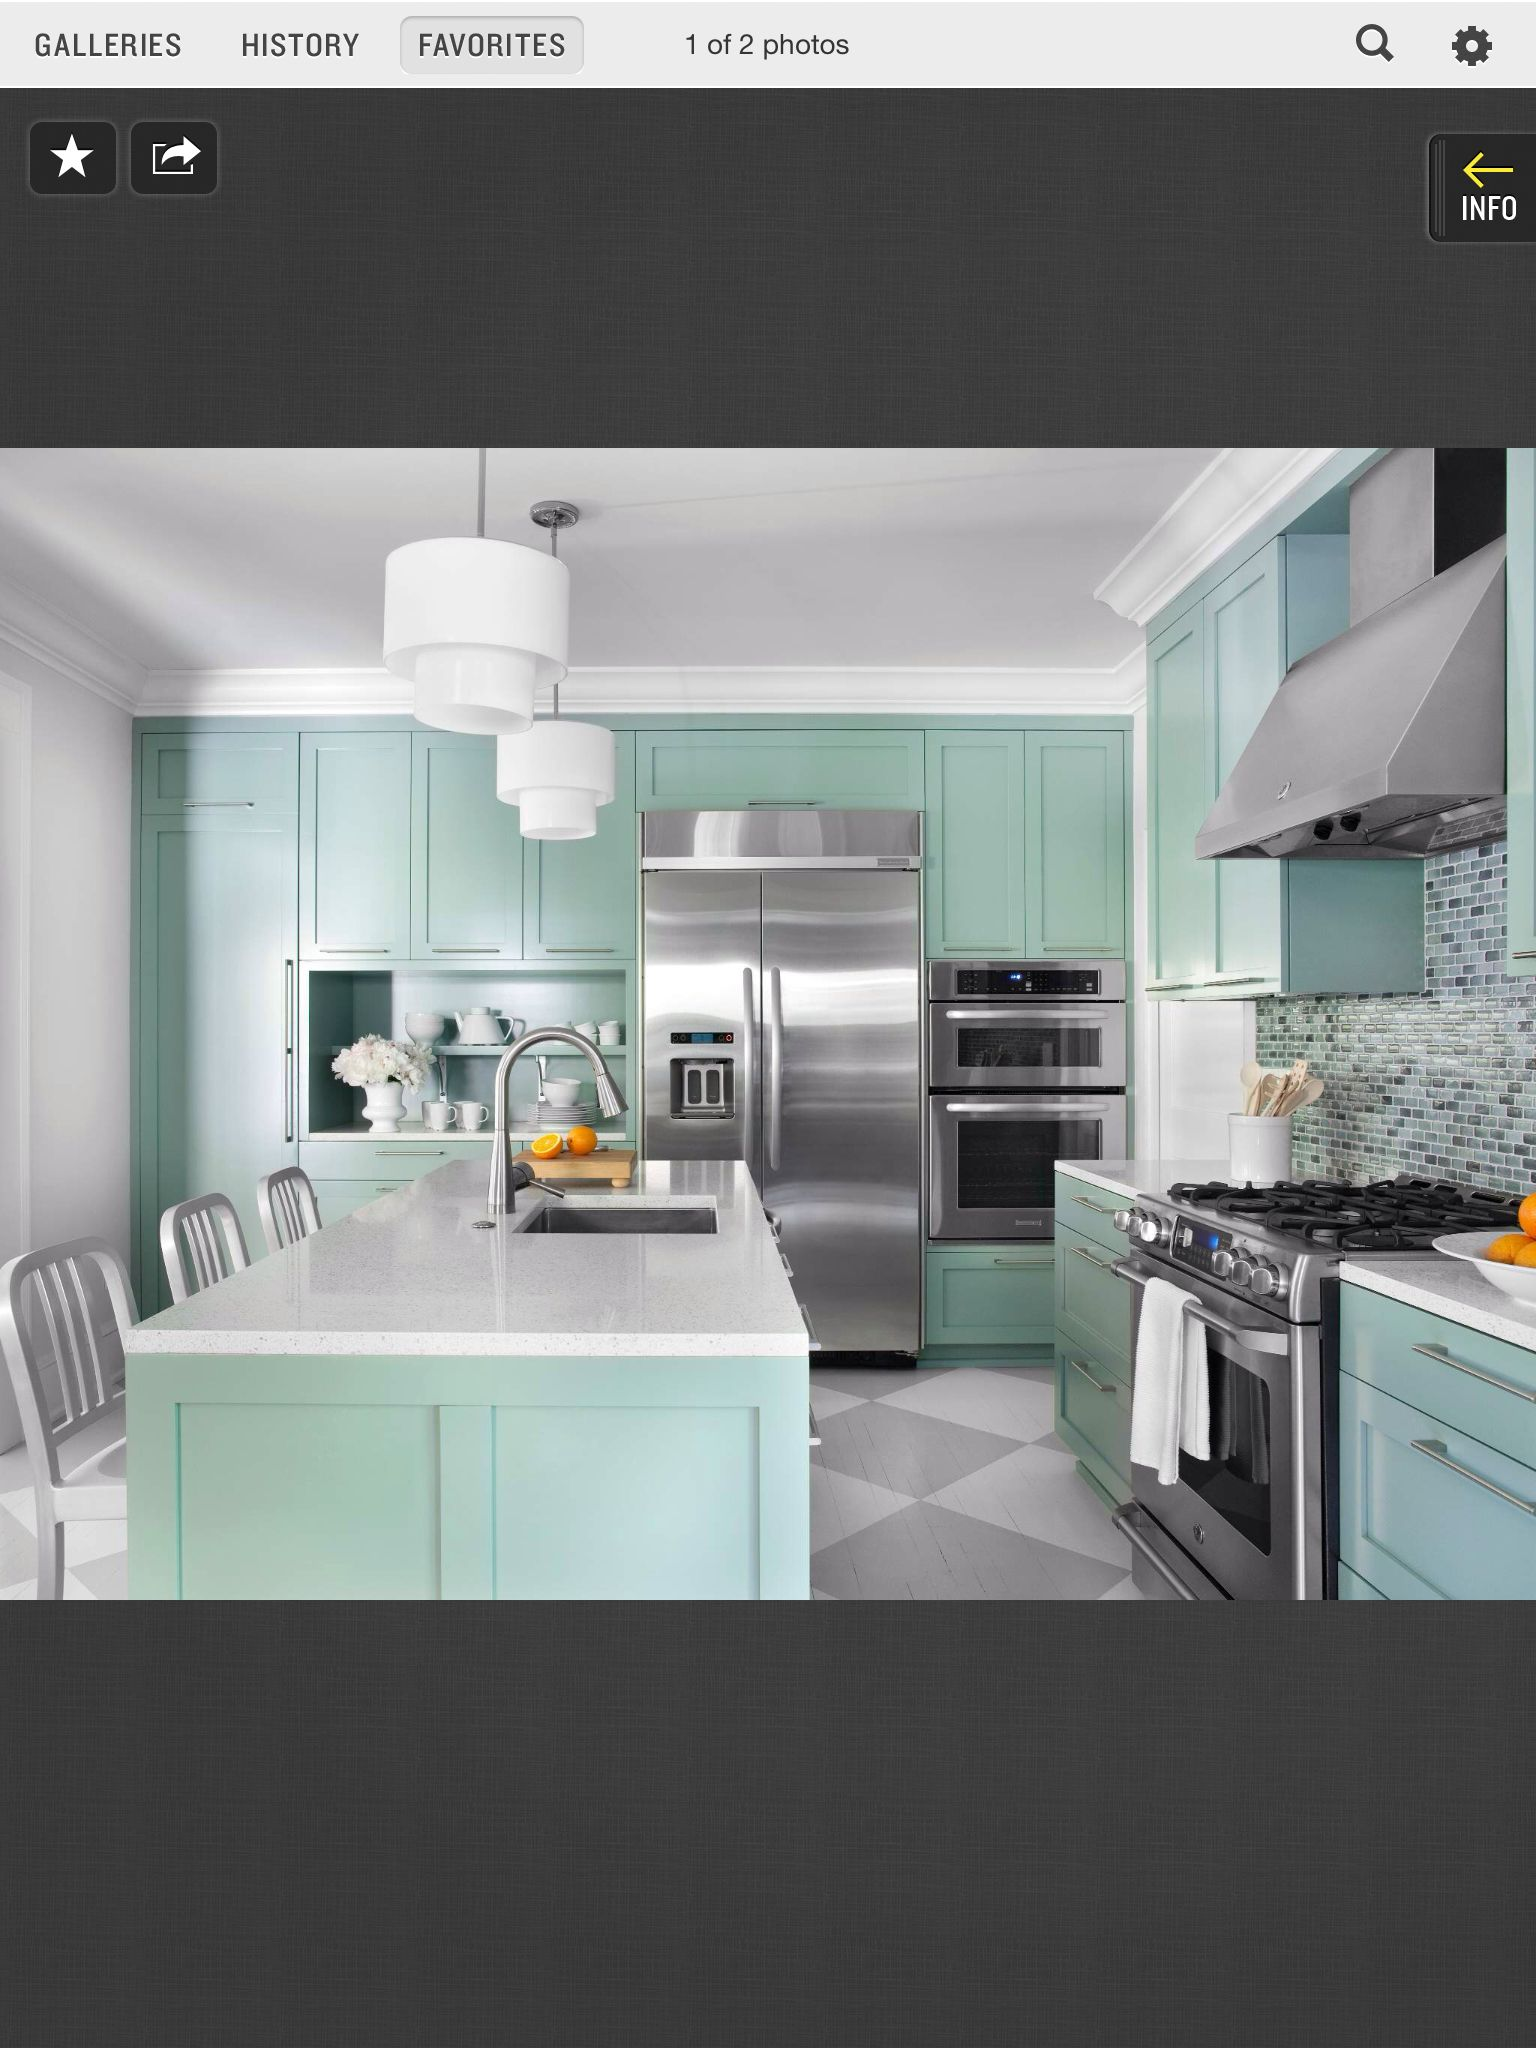 Kitchen Design Neutral Paint Color For Kitchen With Teal Cabinet And High End Stainless Steel Kitchen Appliances bined With Mosaic Tiles Backsplash And